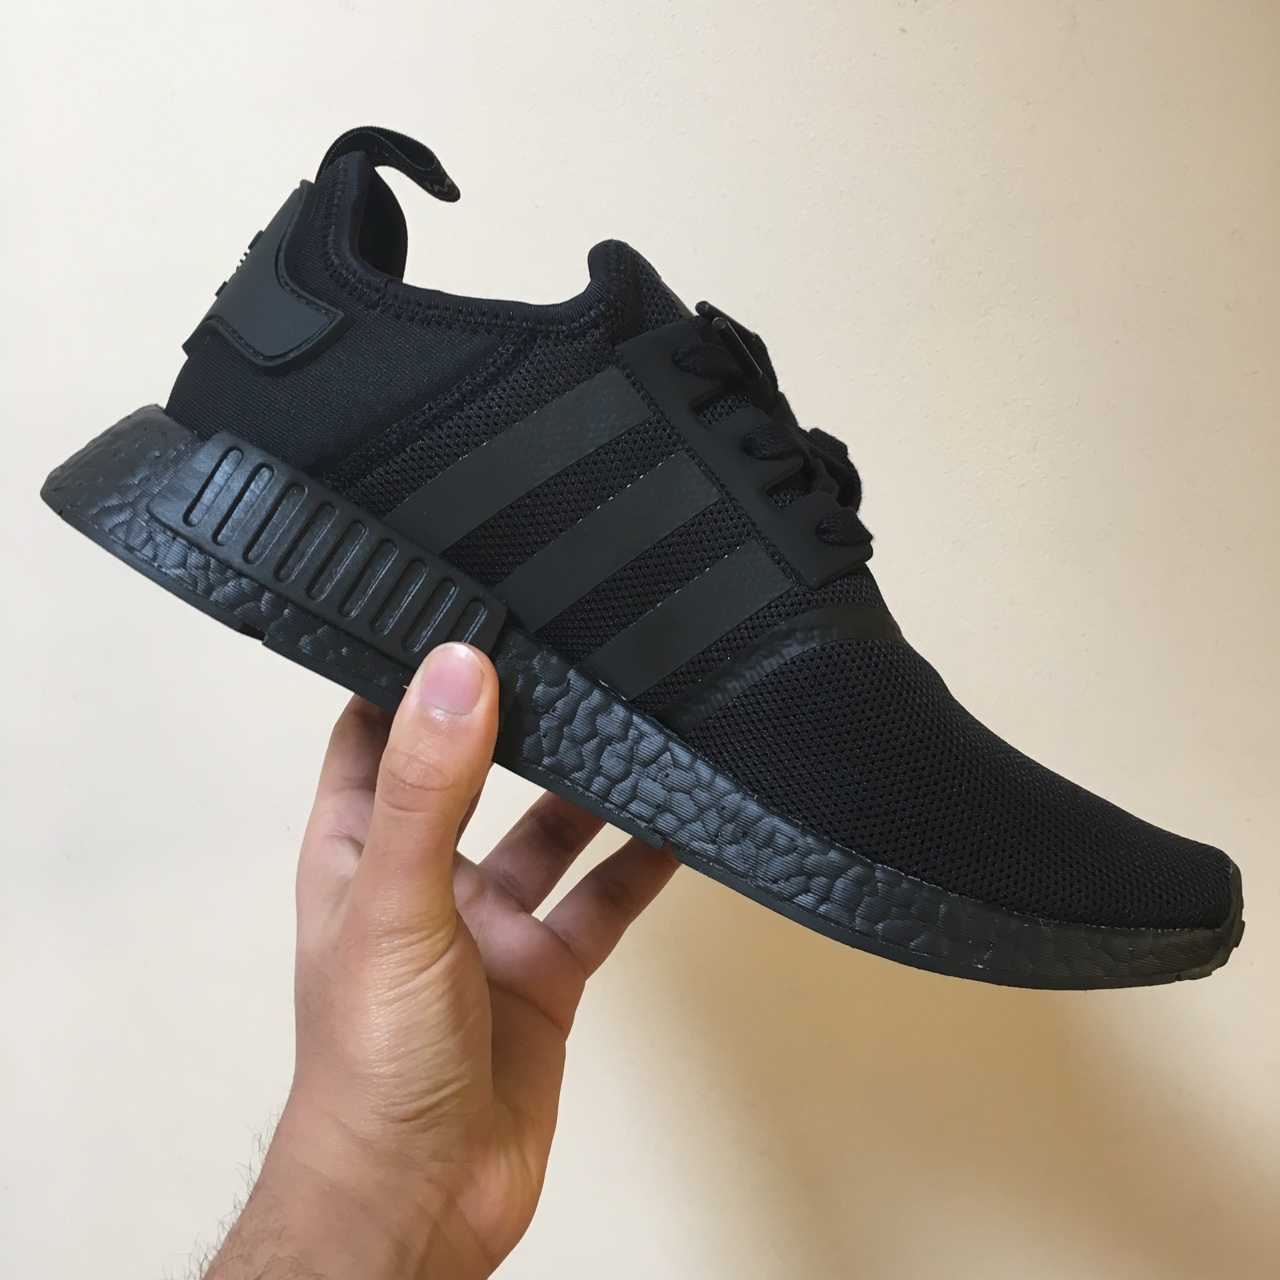 Sold Adidas Nmd R1 Triple Black Deadstock With Tags Depop